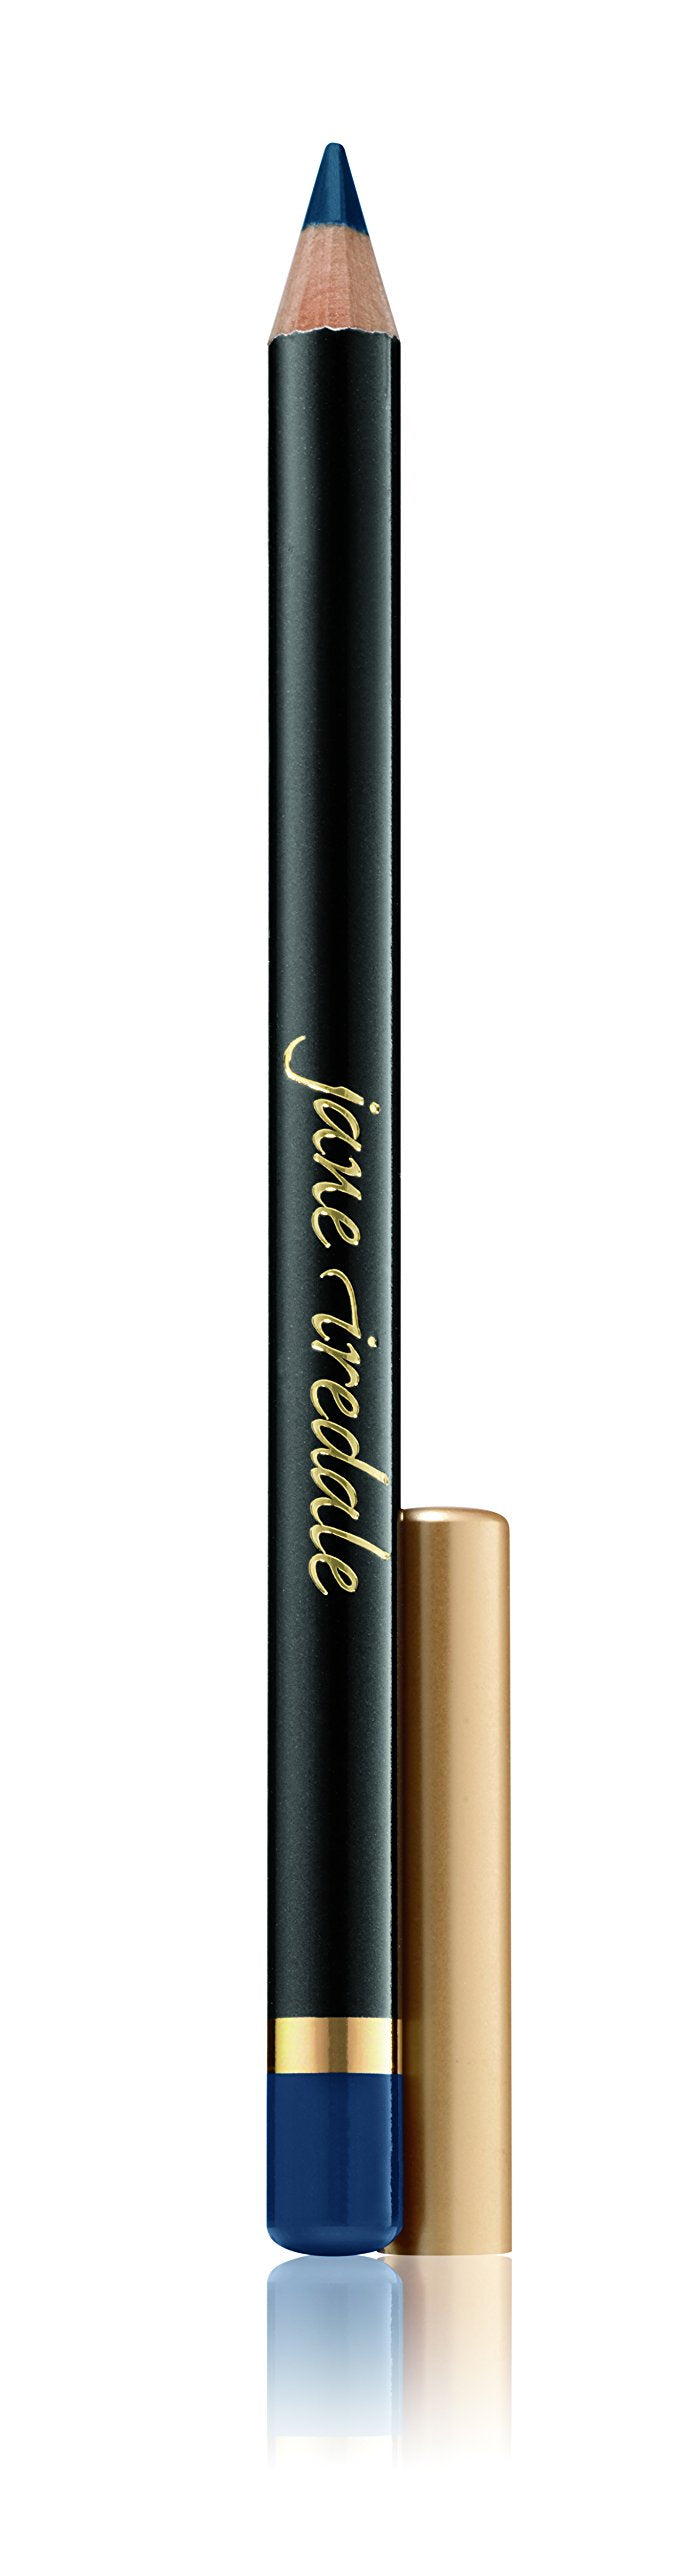 Eye Pencil - Midnight Blue - 0.04 oz Eye Pencil